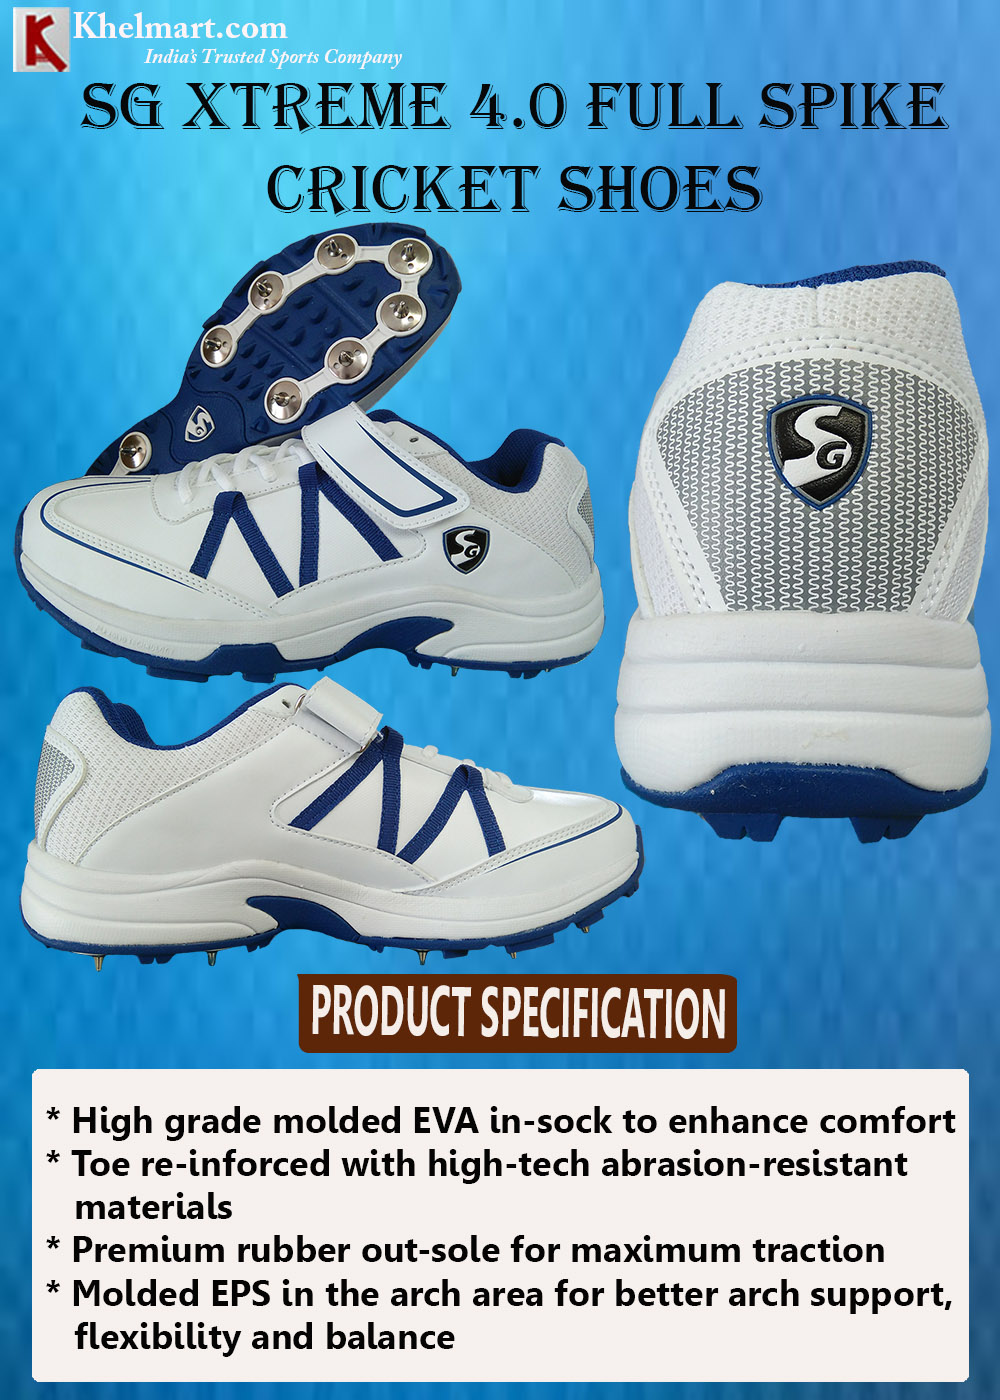 SG Xtreme 4.0 Full Spike Cricket Shoes_8